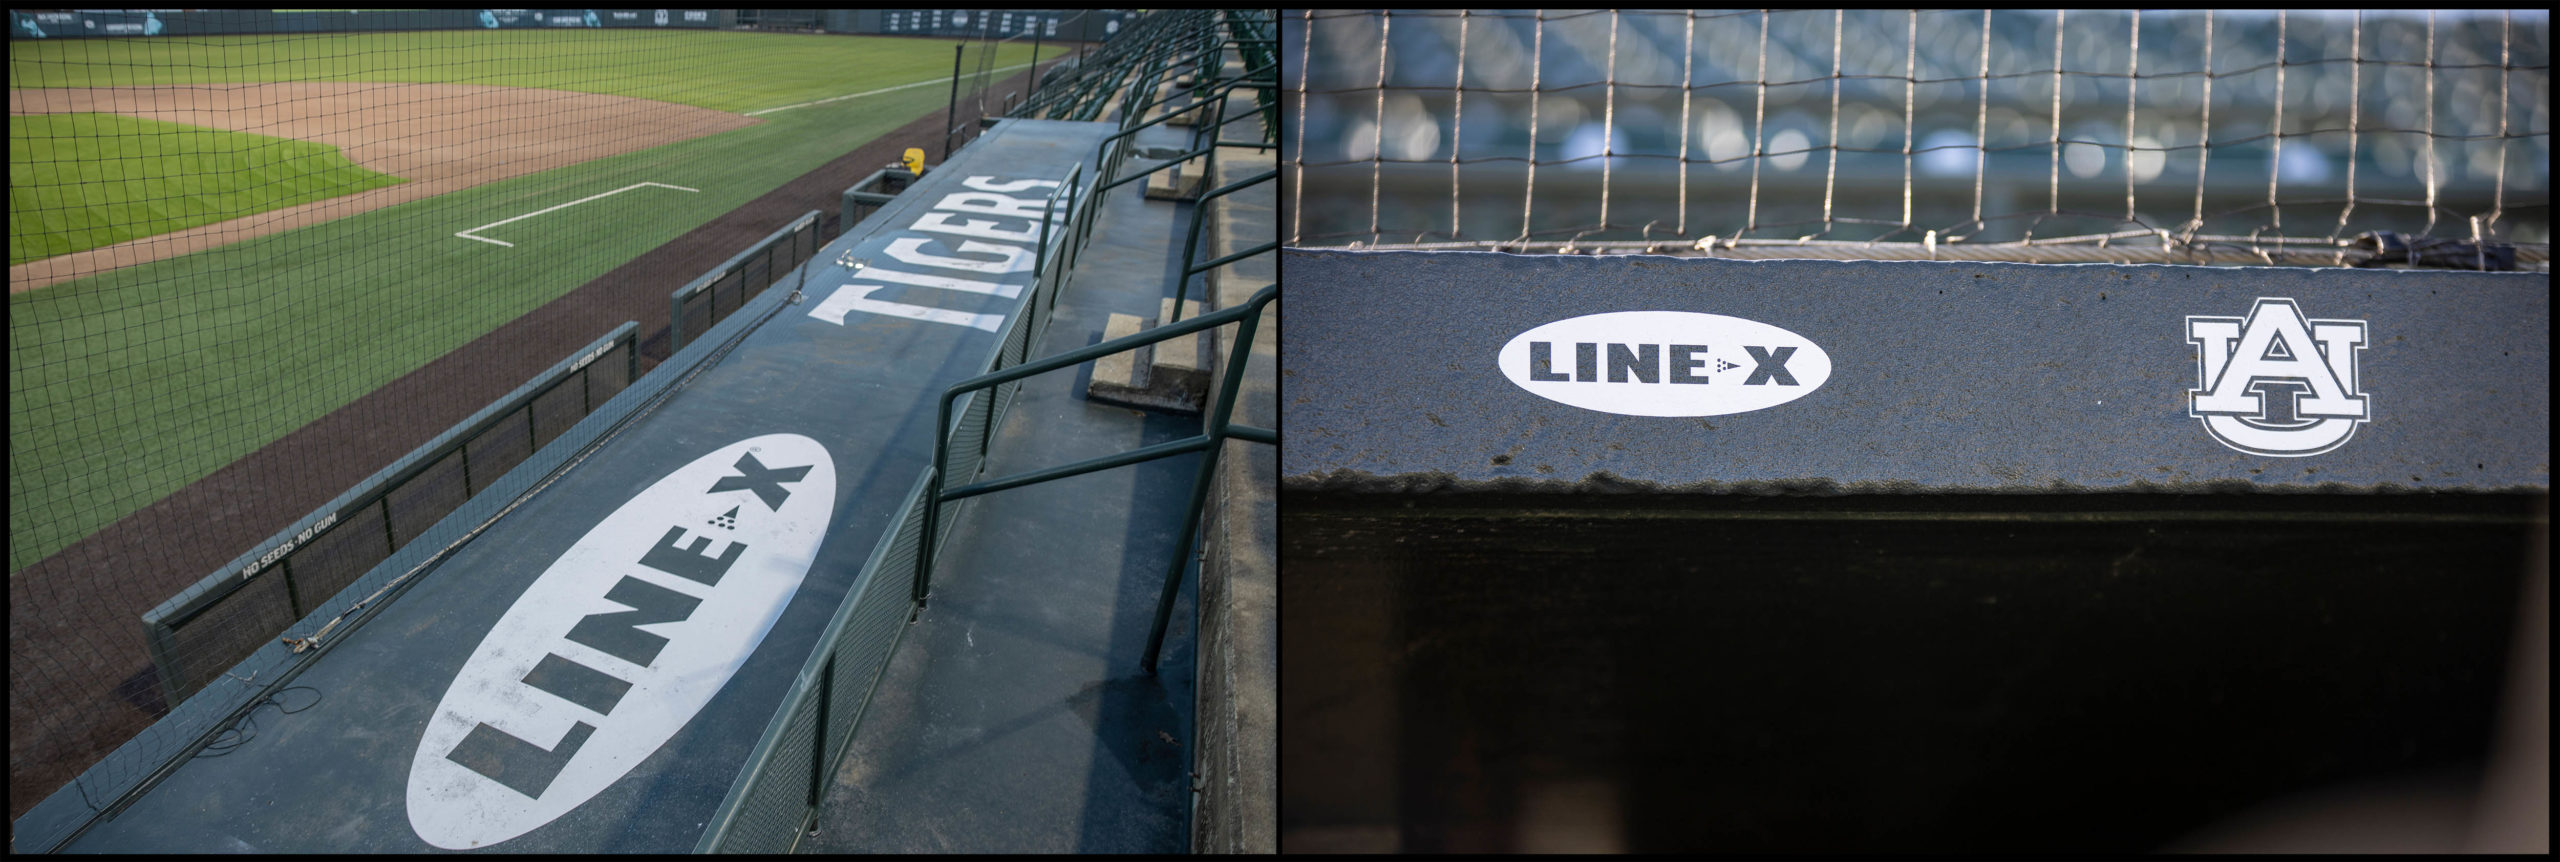 LINE-X restored the roofs and facia of the baseball dugouts at Samford Stadium-Hitchcock Field at Plainsman Park at Auburn Unive